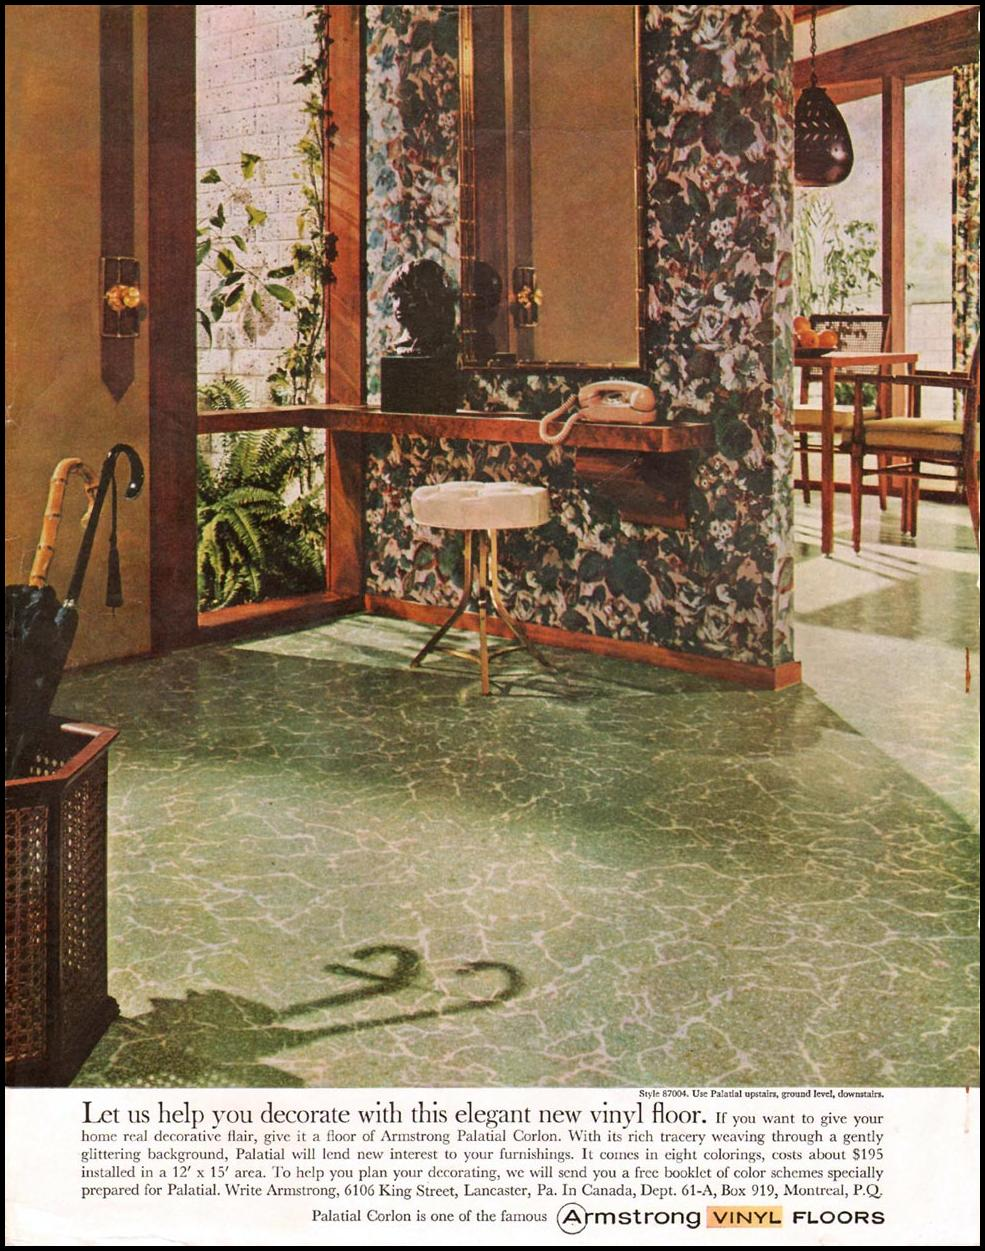 ARMSTRONG VINYL FLOORS LADIES' HOME JOURNAL 06/01/1961 INSIDE FRONT